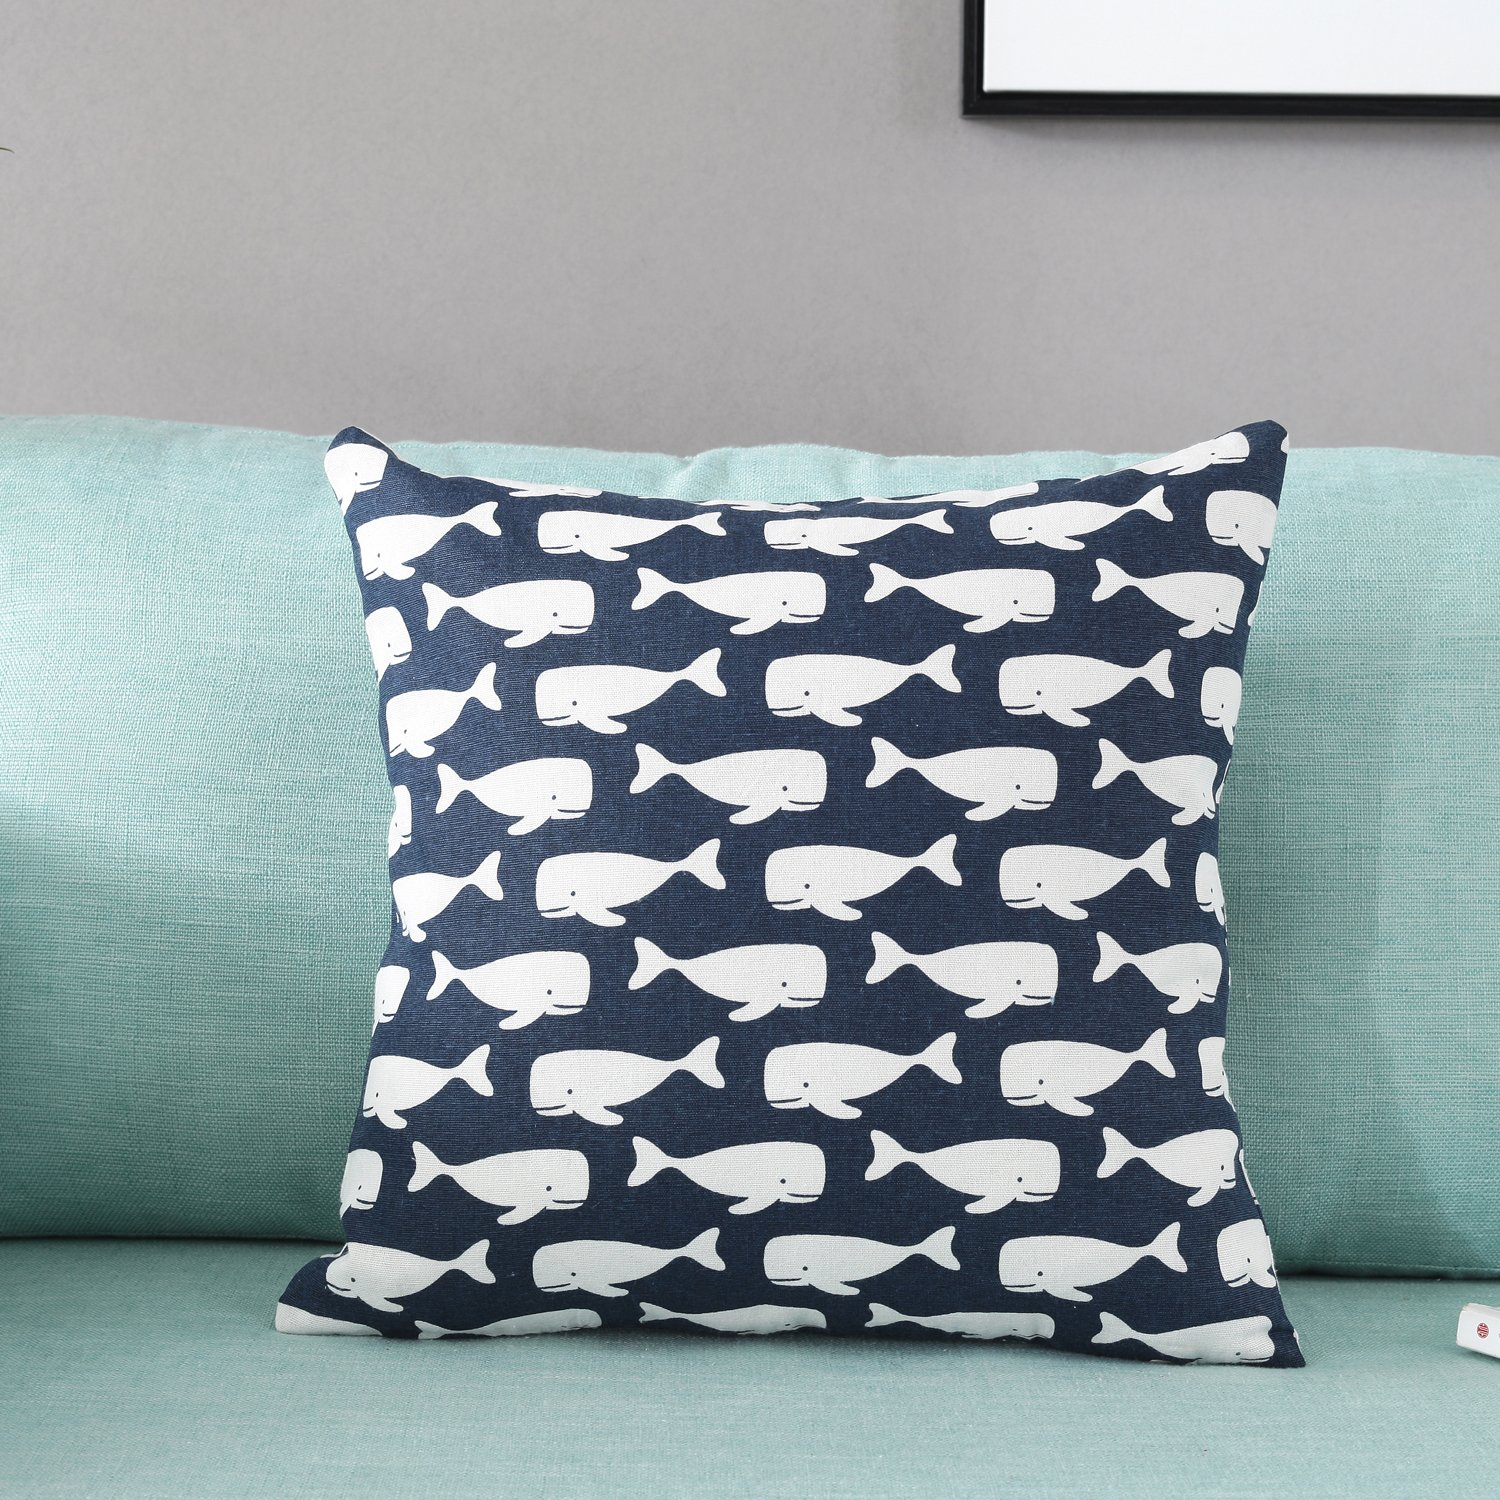 TAOSON American Pastoral Wheat Pattern Cotton Flax Soft Home Decorative Throw Cushion Cover Pillow Cover Pillowcase with Hidden Zipper Closure Only Cover No Insert 18x18 Inch 45x45cm